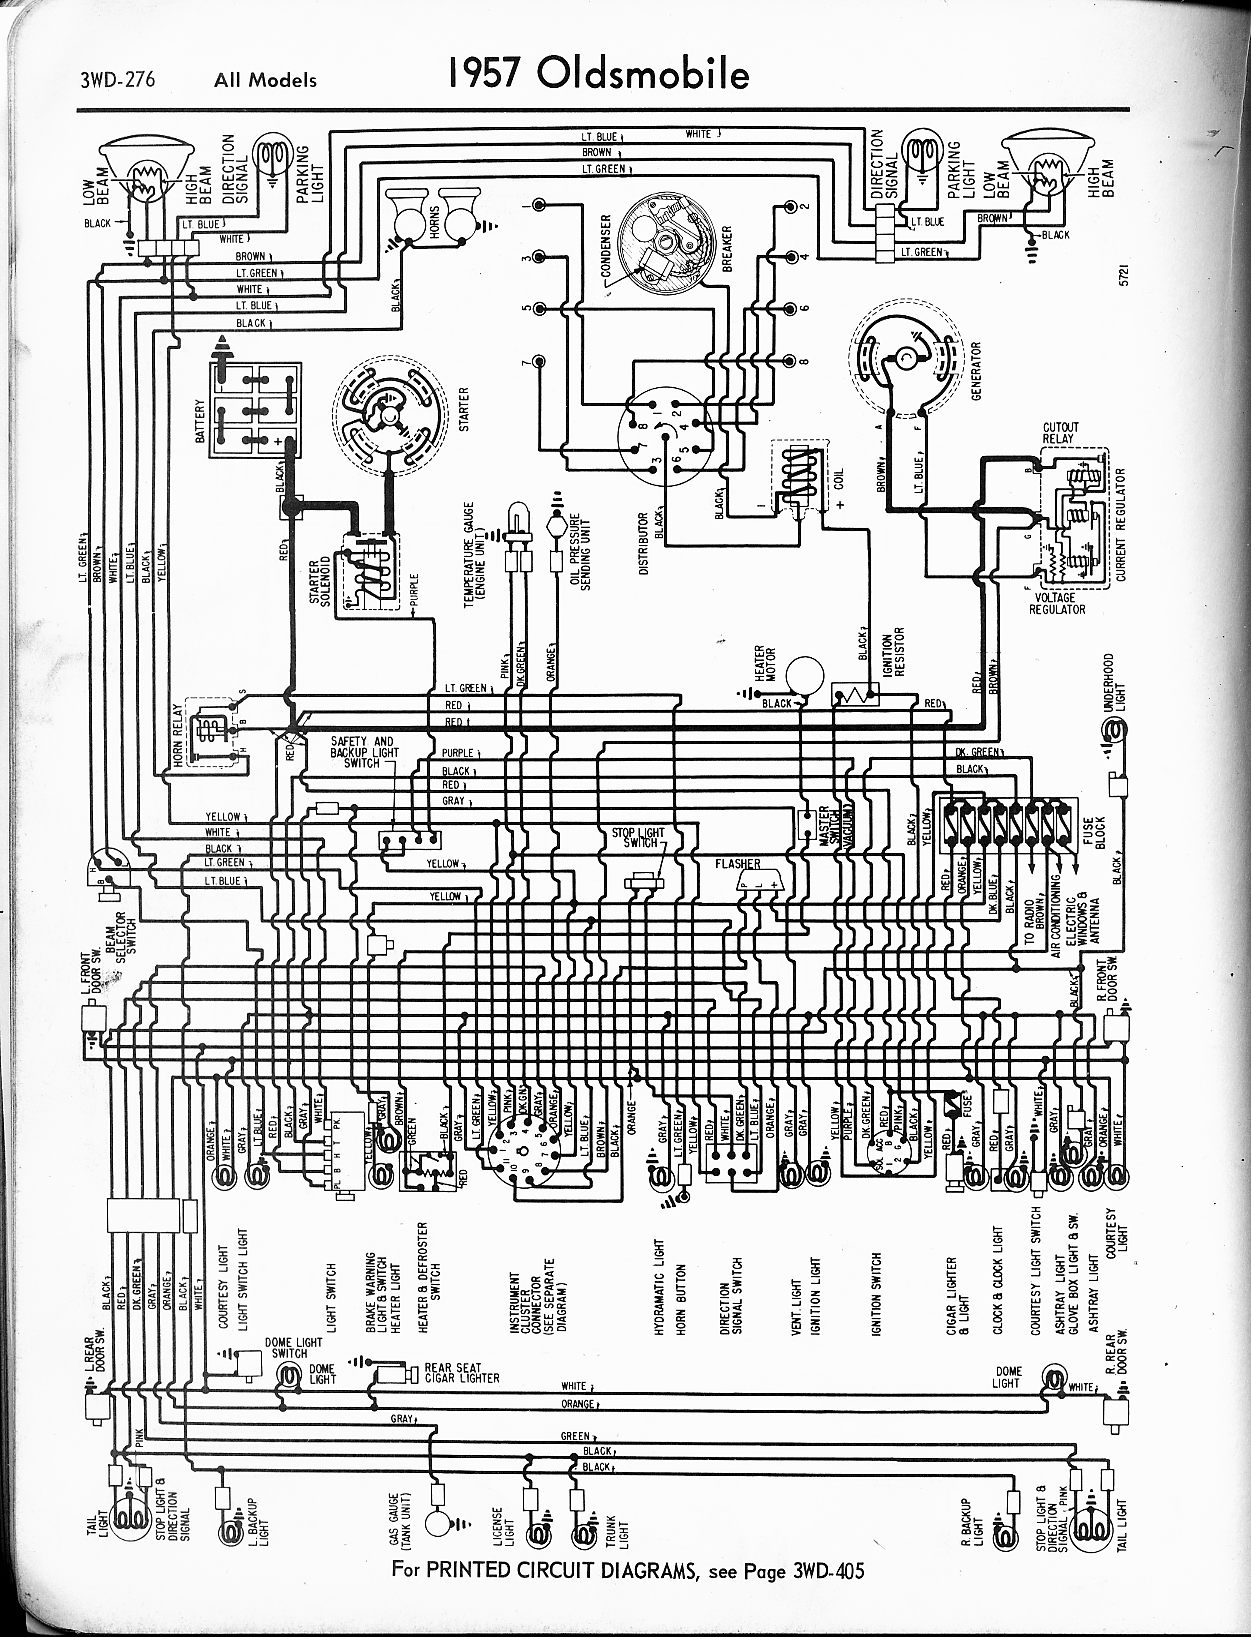 MWire5765 276 oldsmobile wiring diagrams the old car manual project